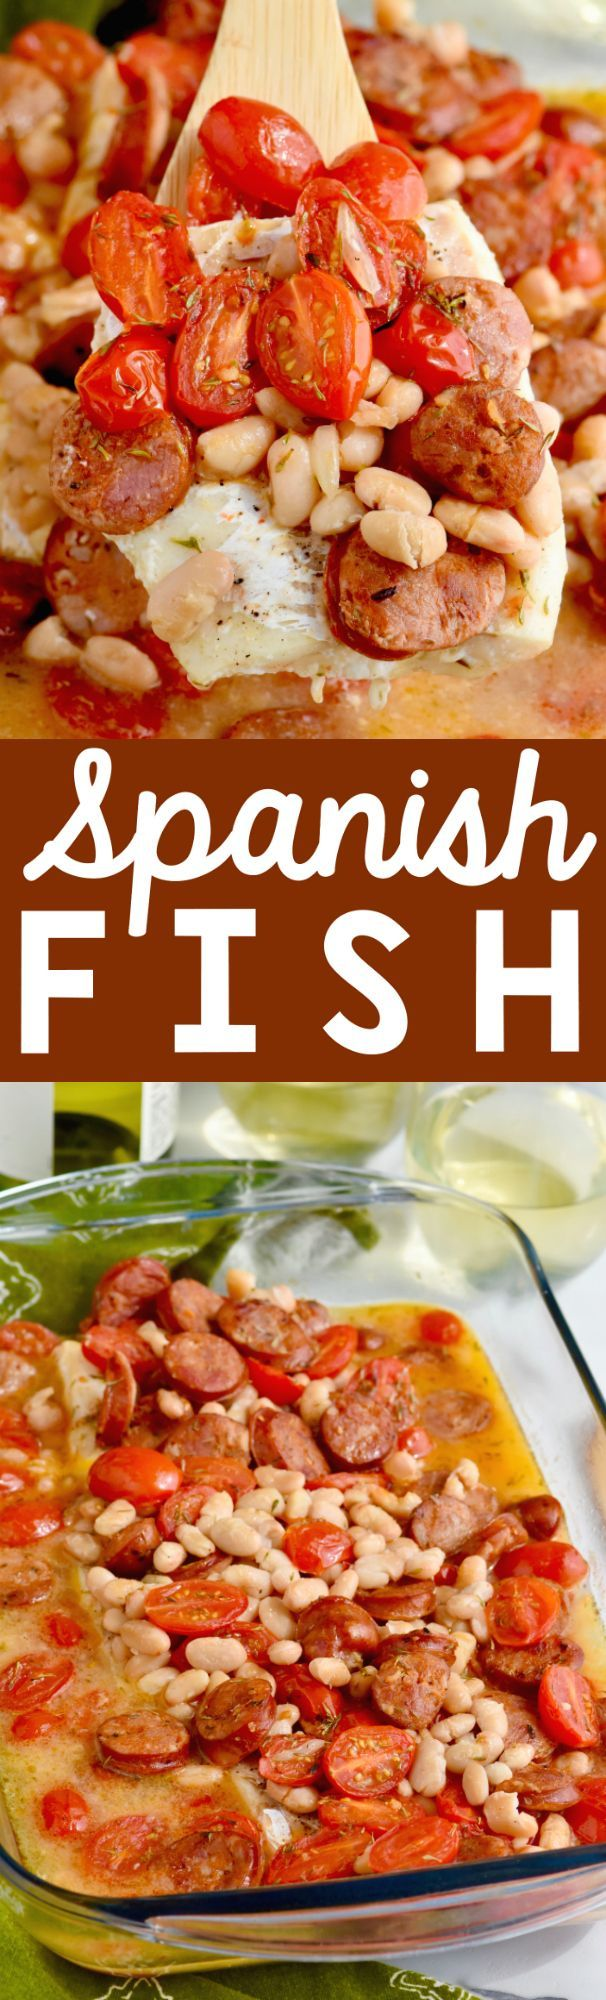 17 best images about recipes seafood and fish on pinterest for Easy fish recipes for dinner